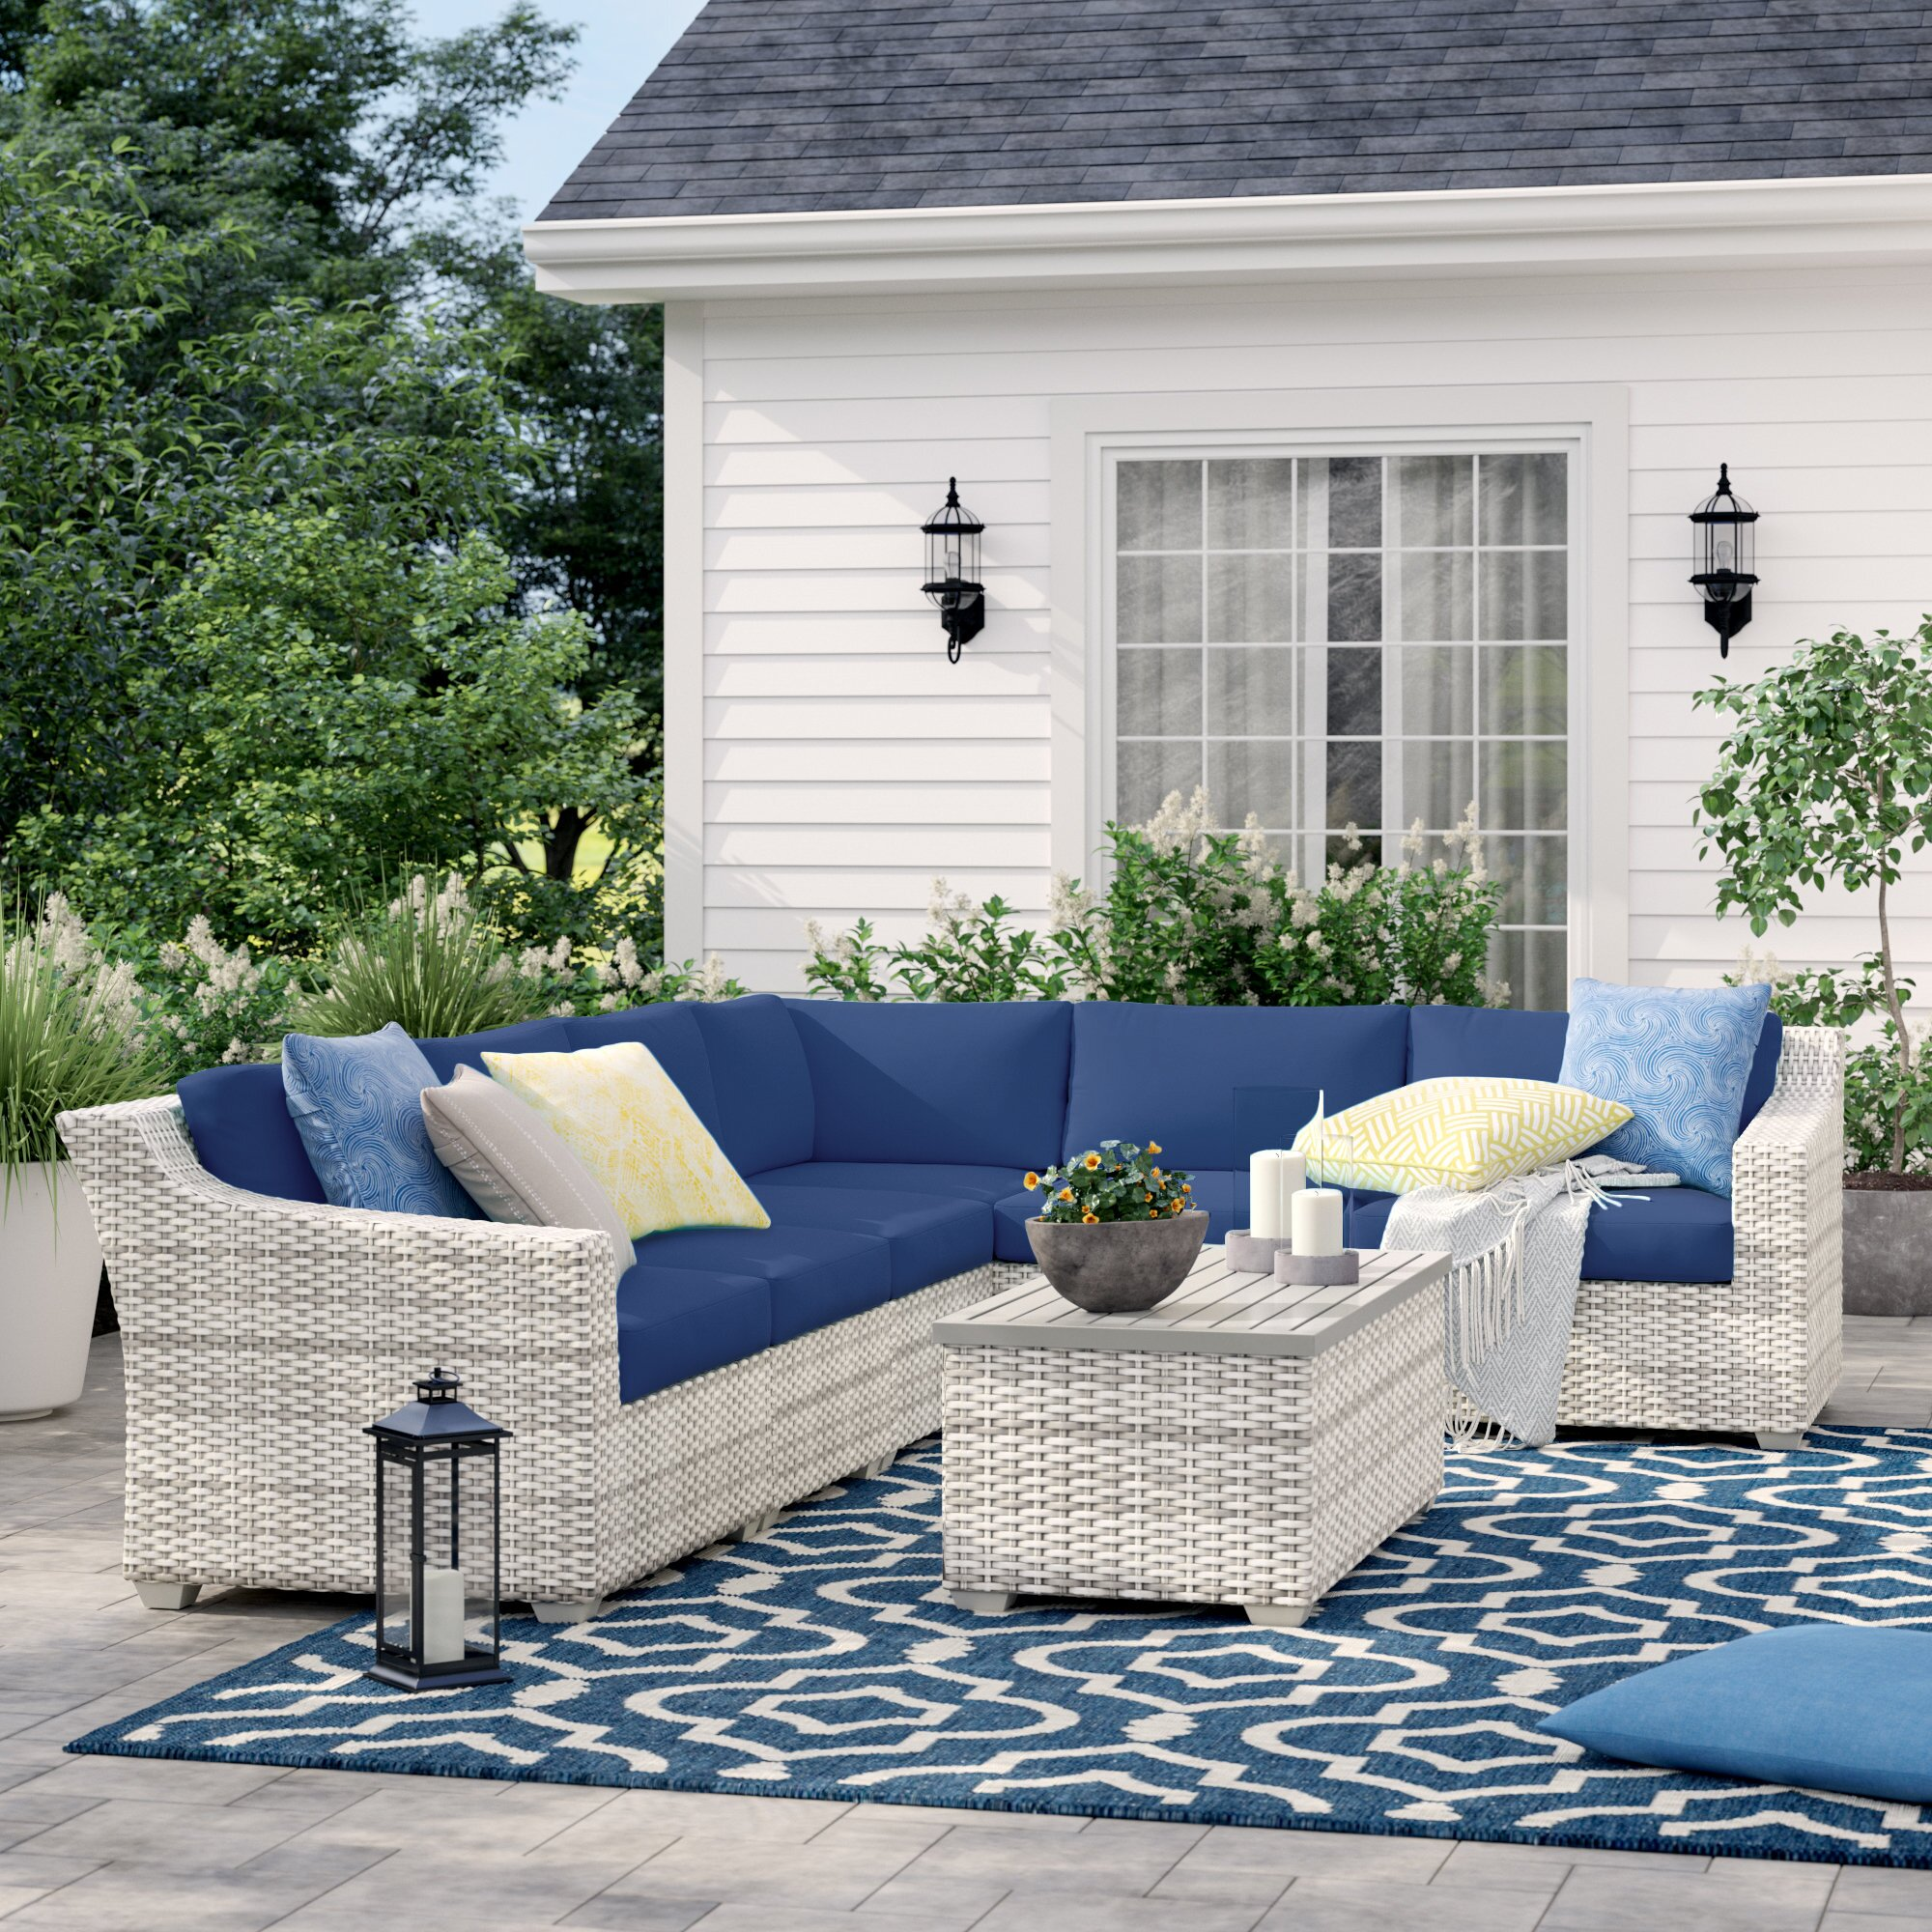 Sol 72 Outdoor Falmouth 7 Piece Rattan Sectional Seating Group With Cushions Reviews Wayfair